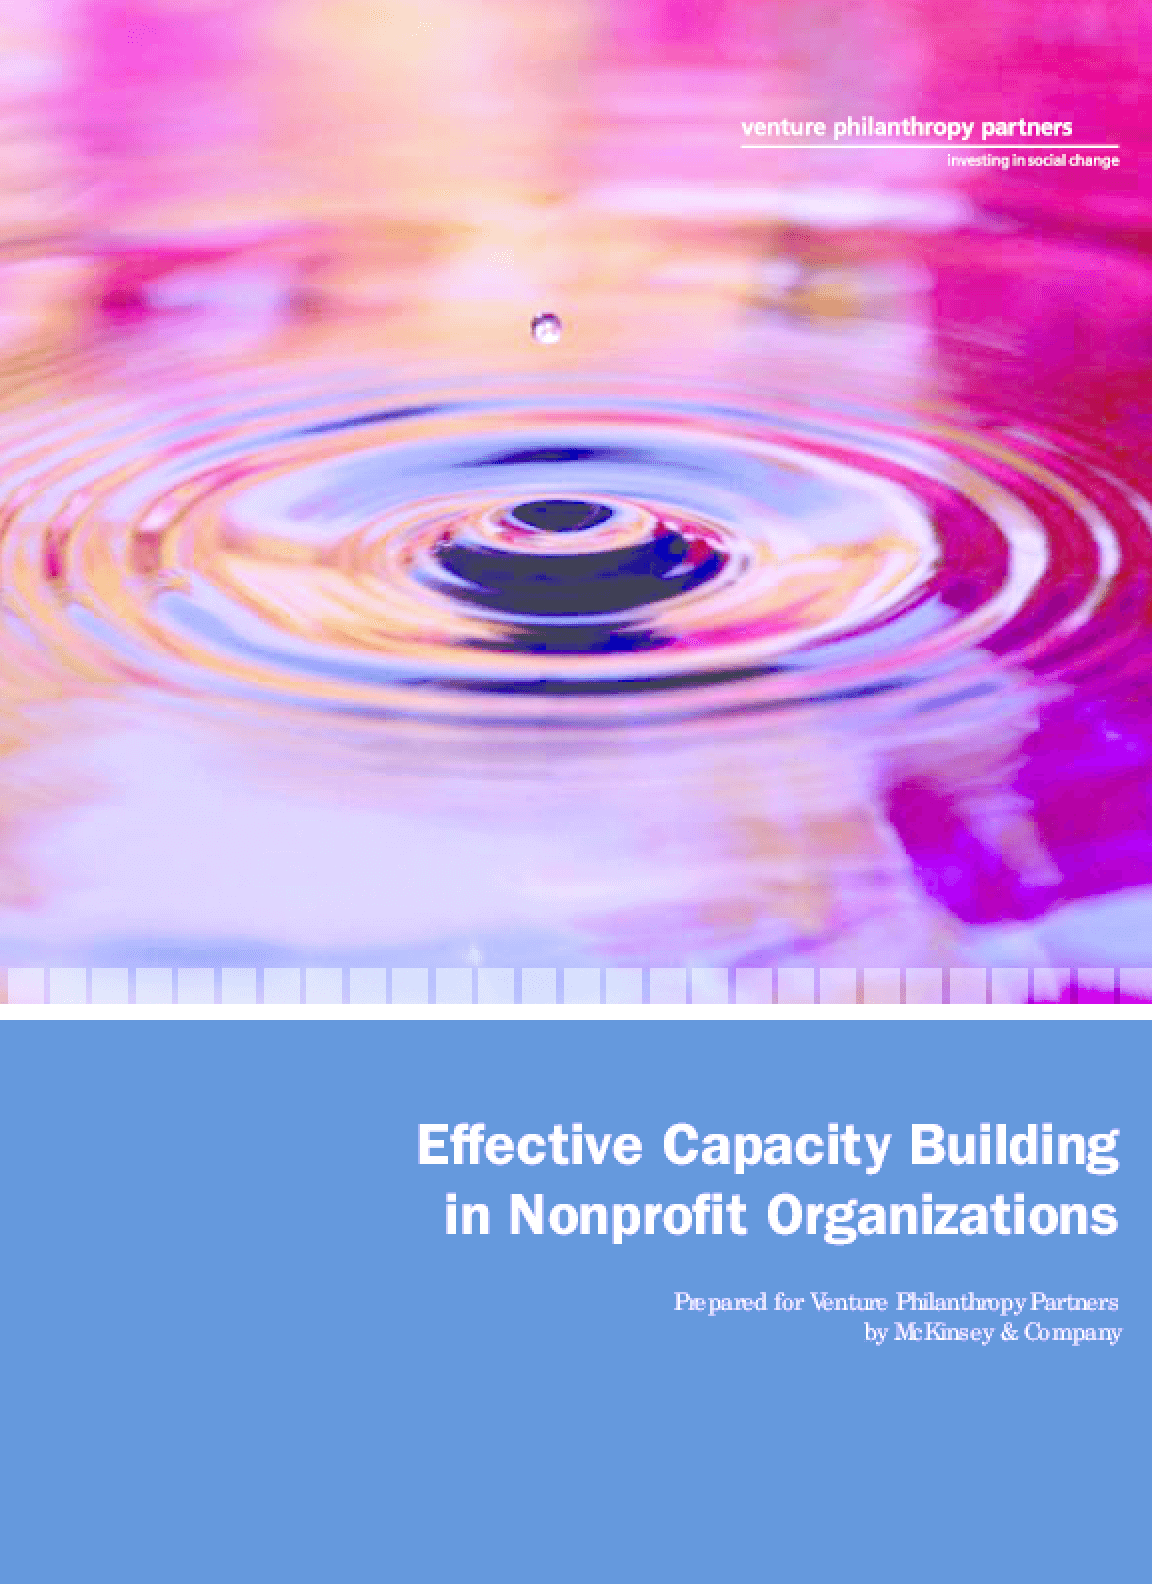 Effective Capacity Building in Nonprofit Organizations